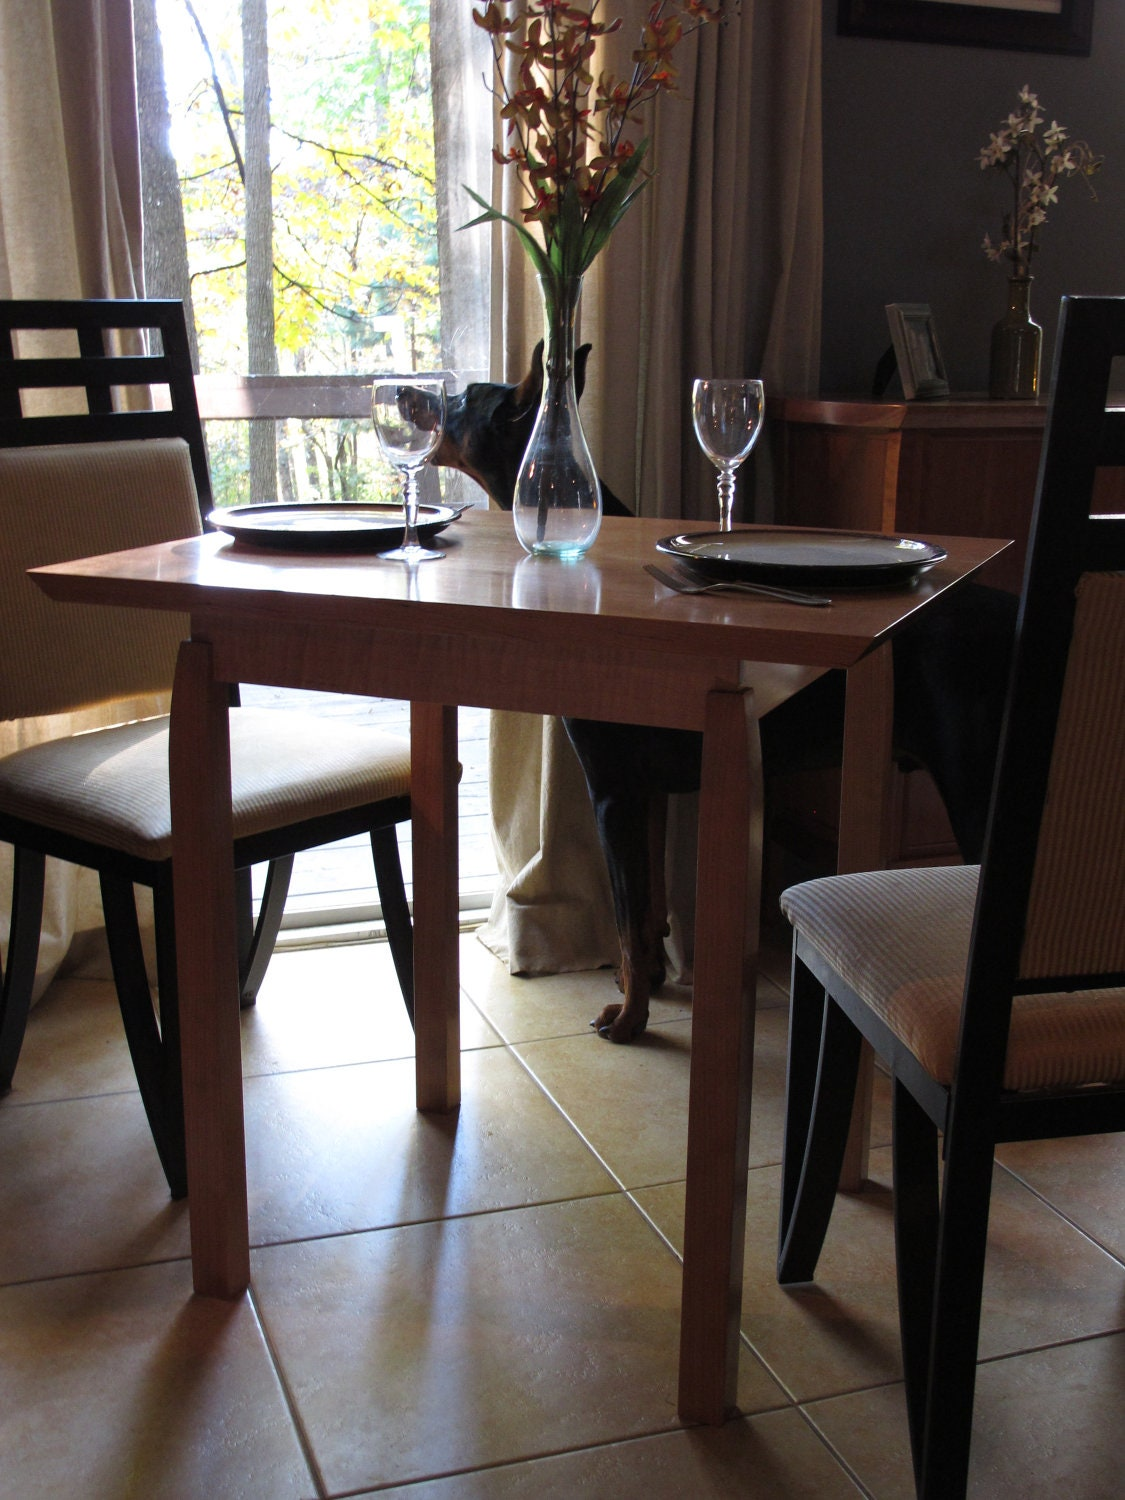 Narrow Dining Table For Two: Small Kitchen Table For